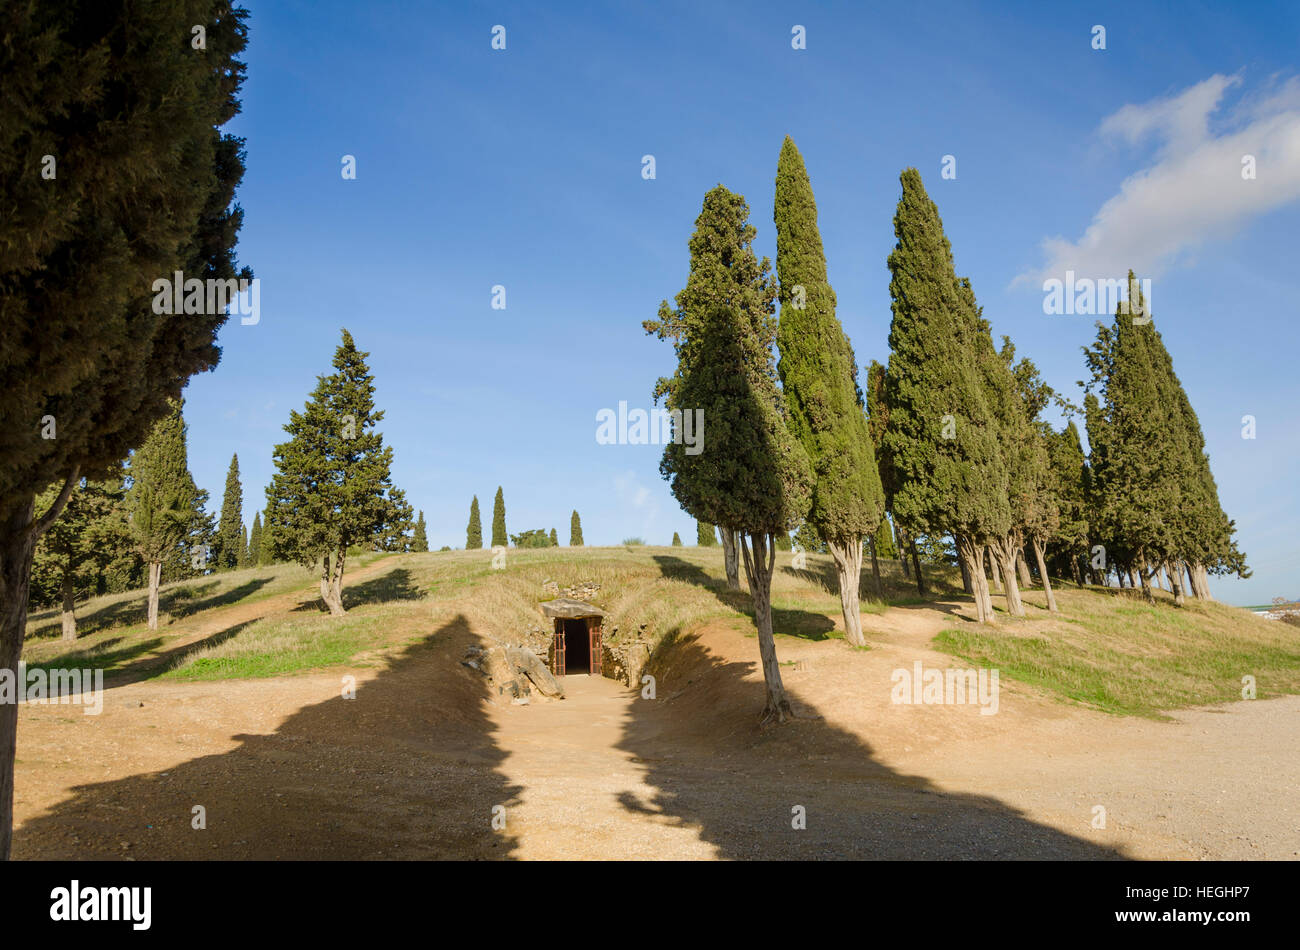 The Romeral Dolmen, dolmens, prehistoric burial chambers, megalithic tombs, Antequera, Andalusia, Spain - Stock Image